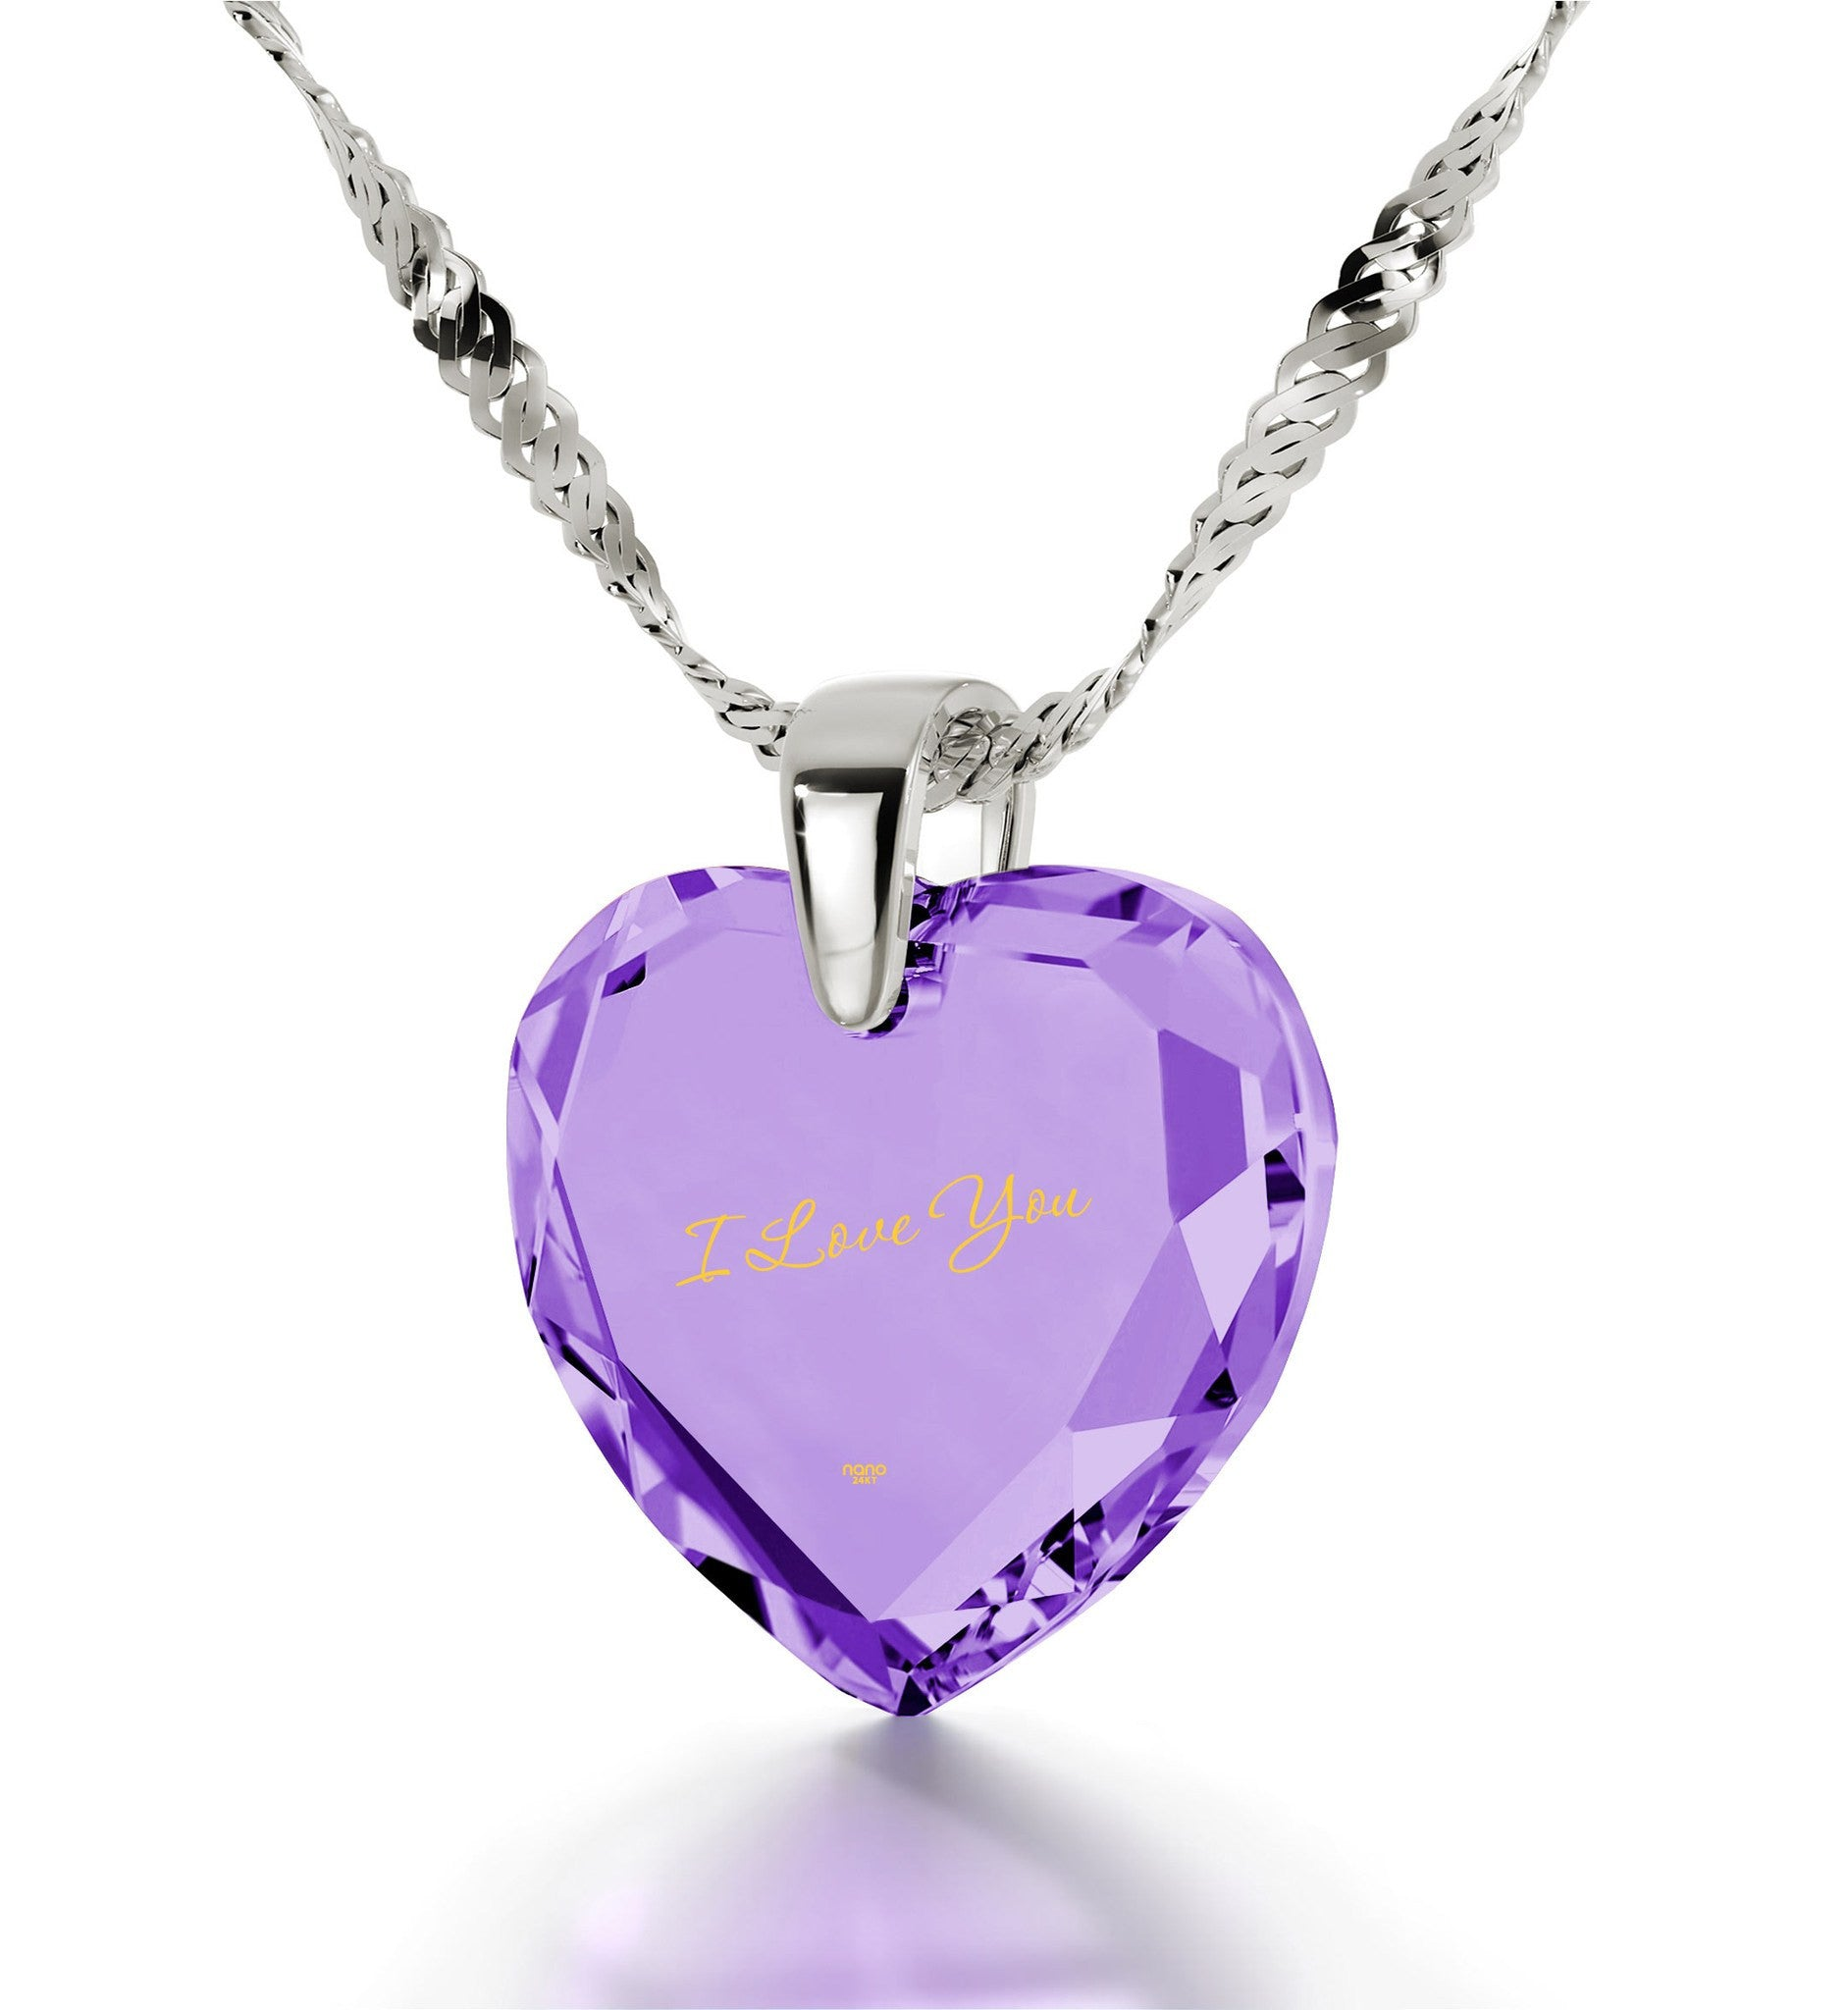 Women's Gifts for Christmas, I Love You Engraved Necklaces Birthday, Present Ideas for Girlfriend